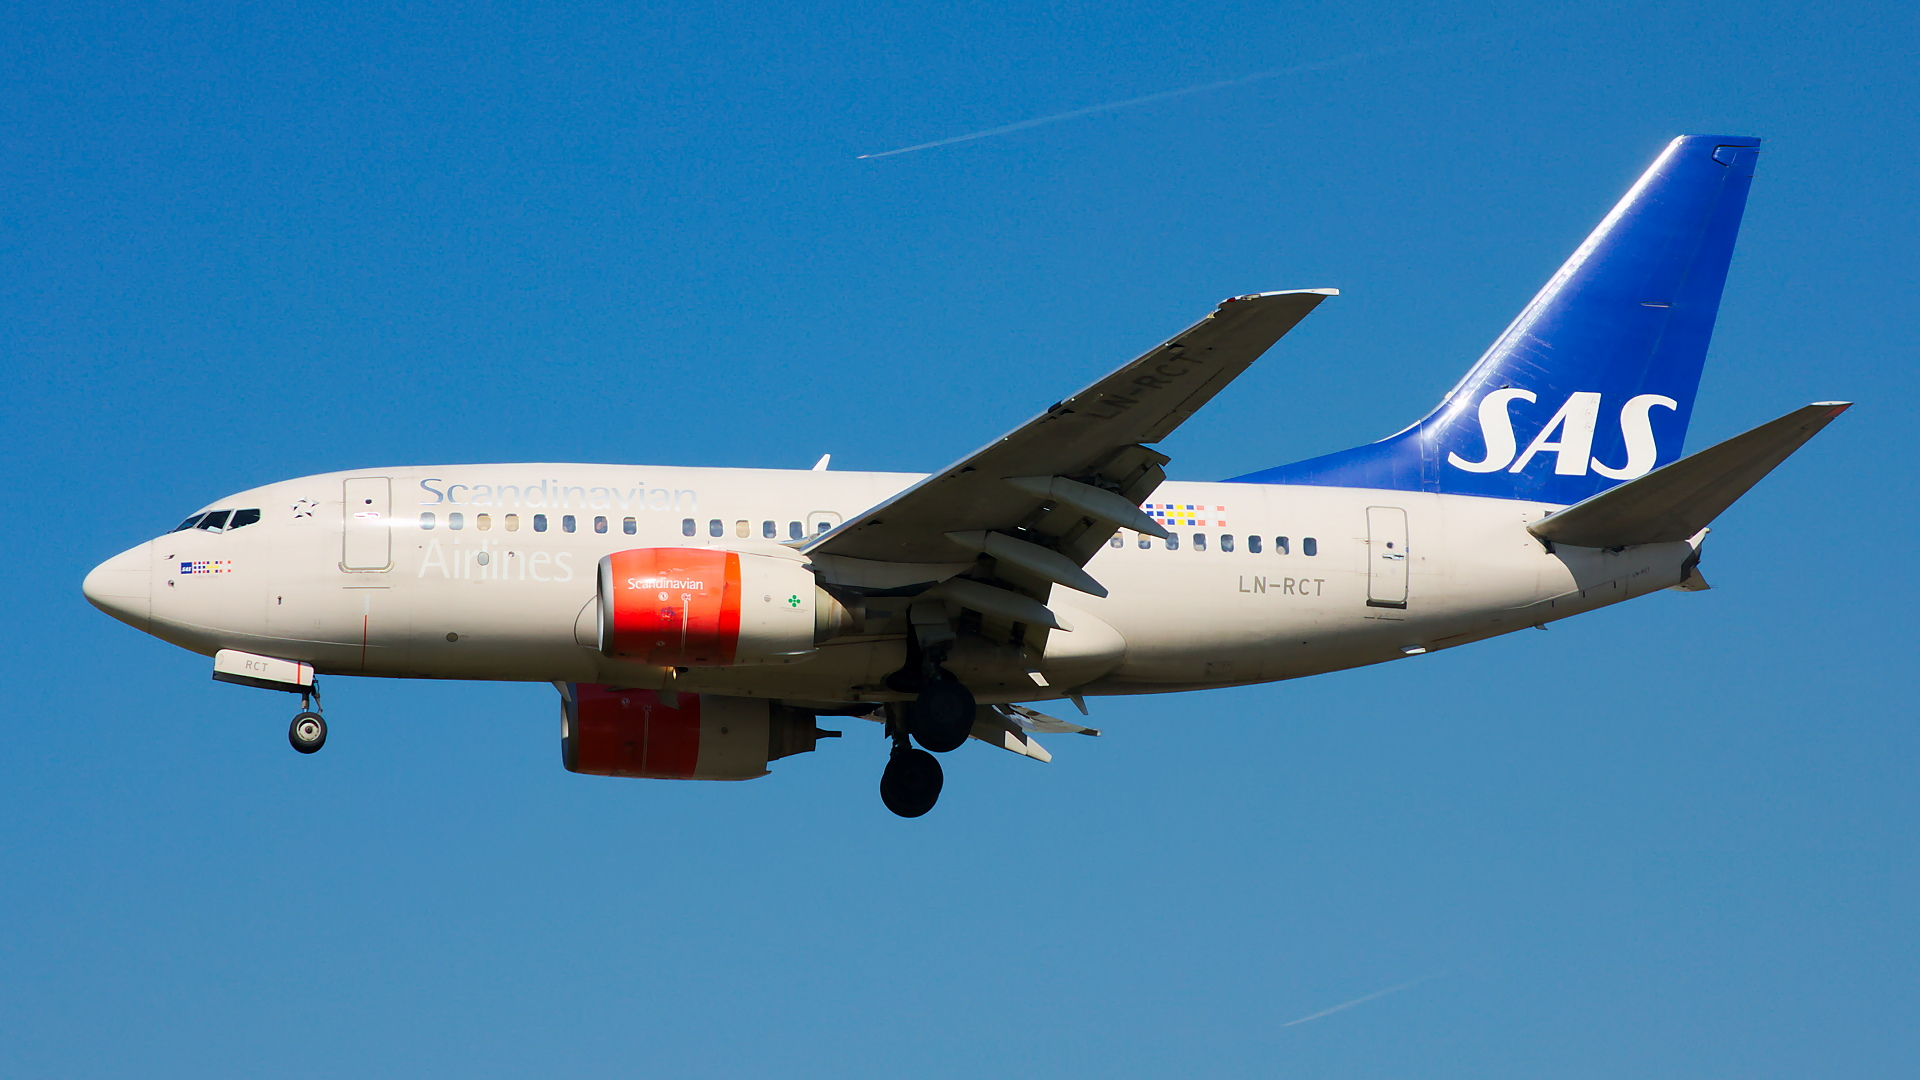 LN-RCT ✈ Scandinavian Airlines Boeing 737-683 @ London-Heathrow